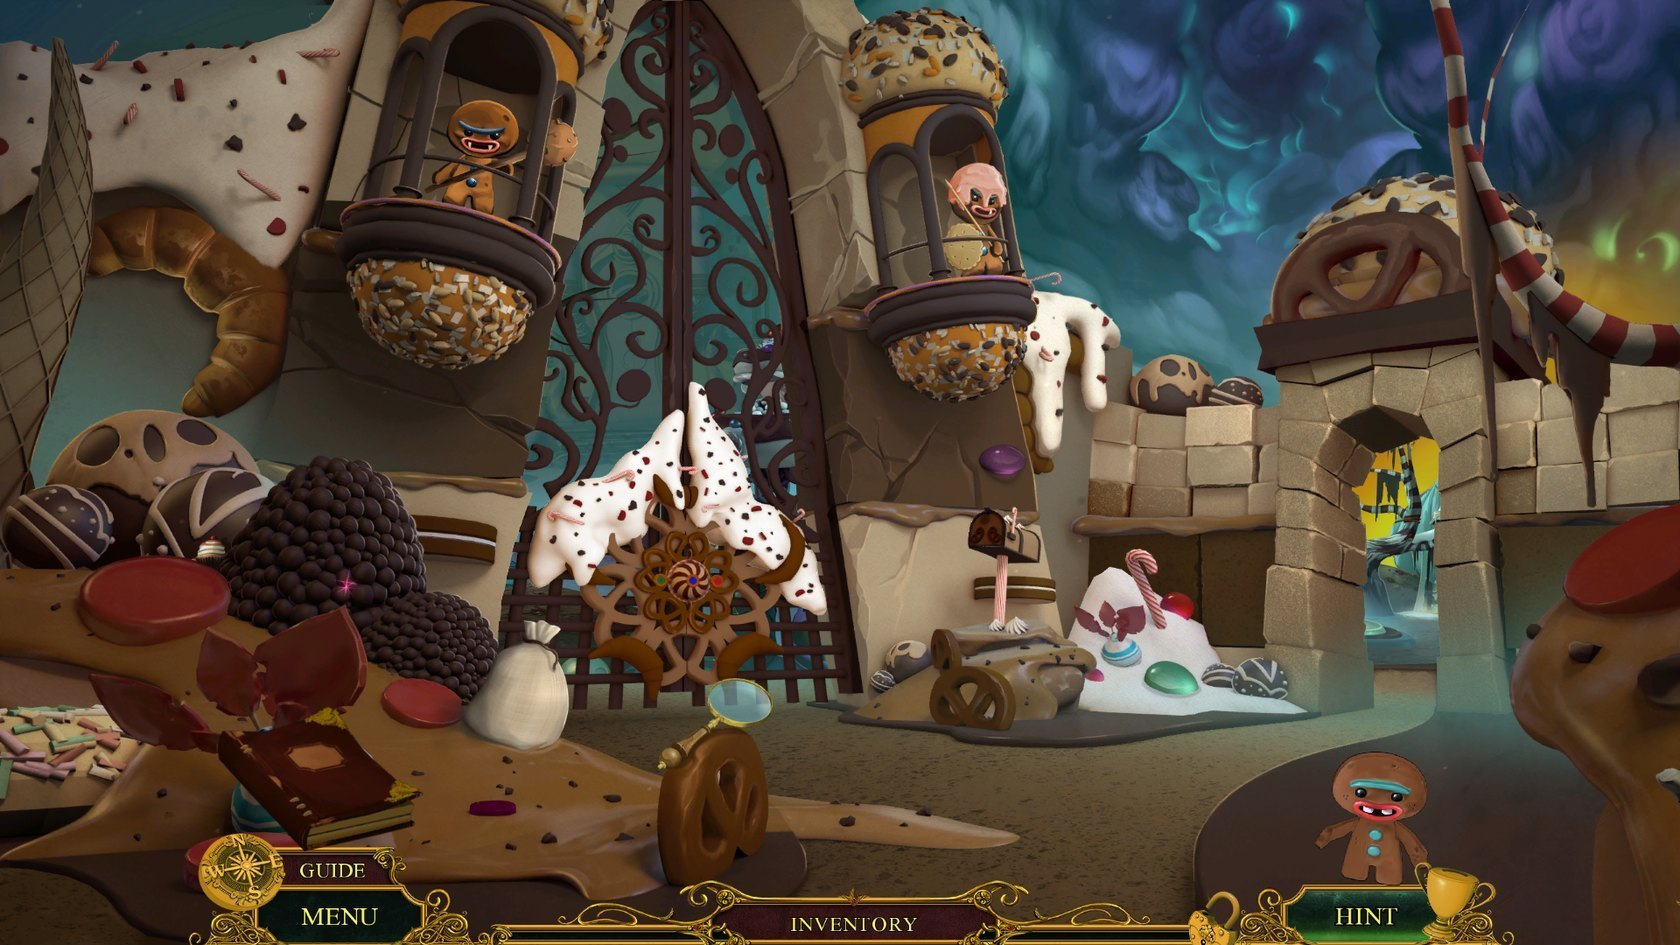 Screenshot 1 for Fearful Tales: Hansel and Gretel Collector's Edition